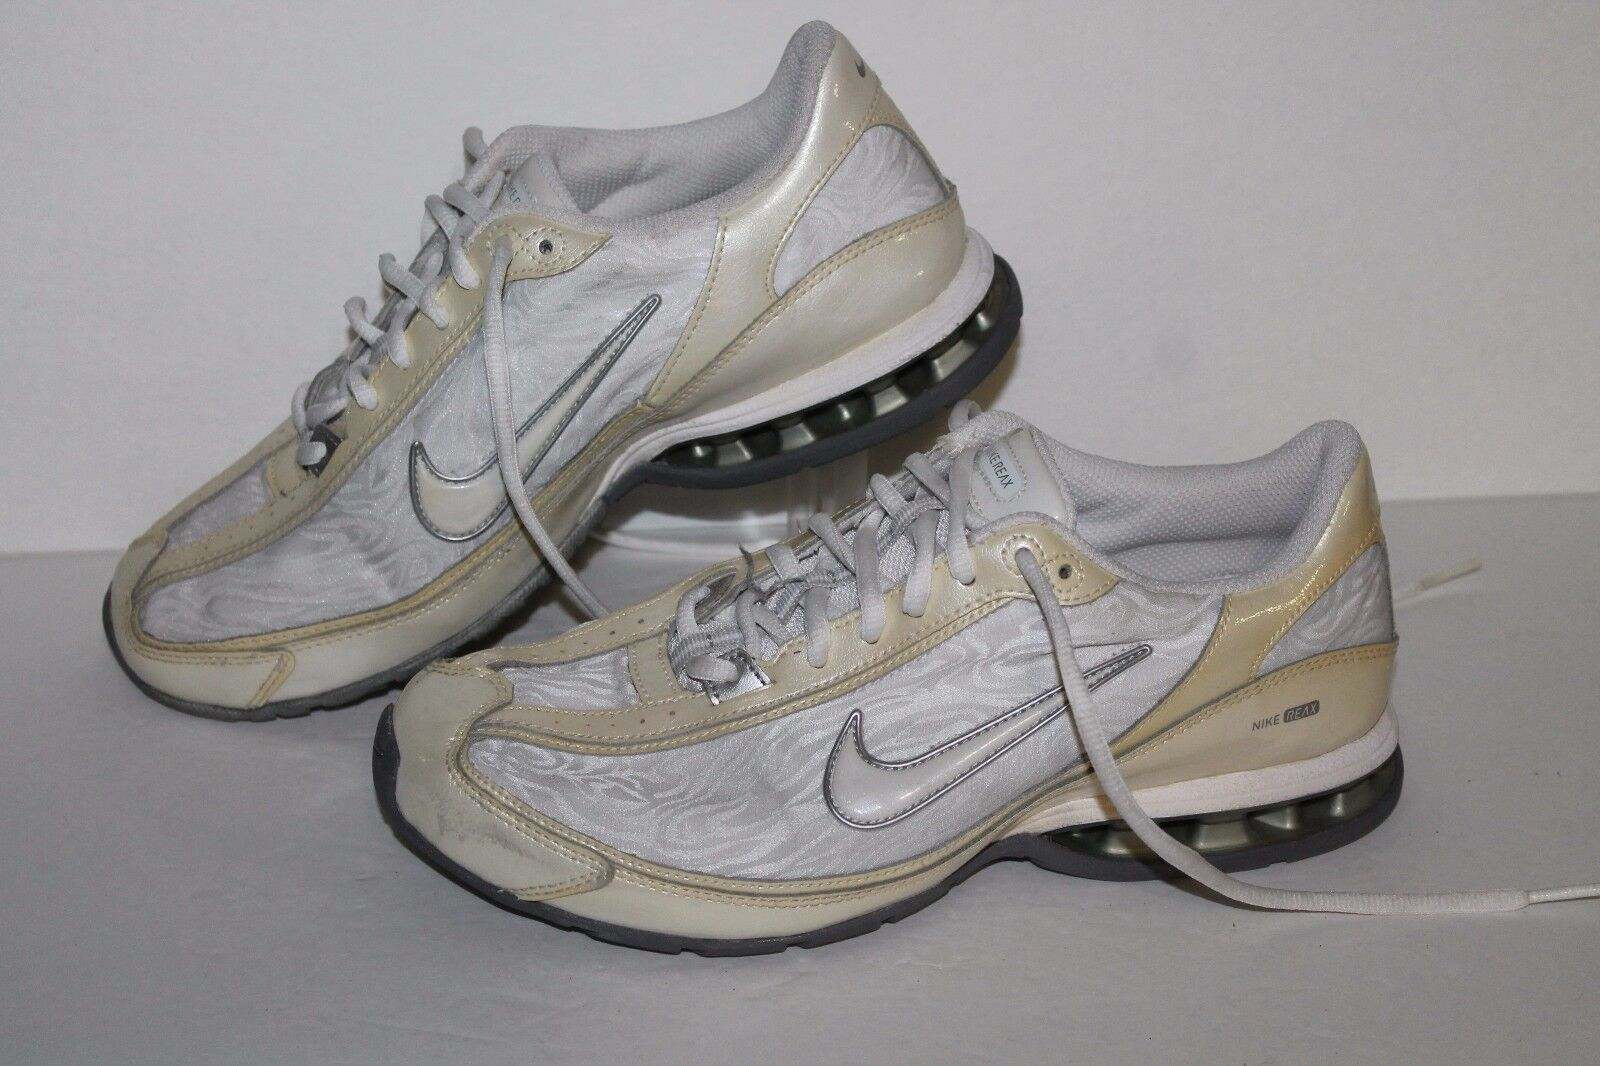 Nike Reax Revolution Running Shoes, White/Grey, Womens US 8.5